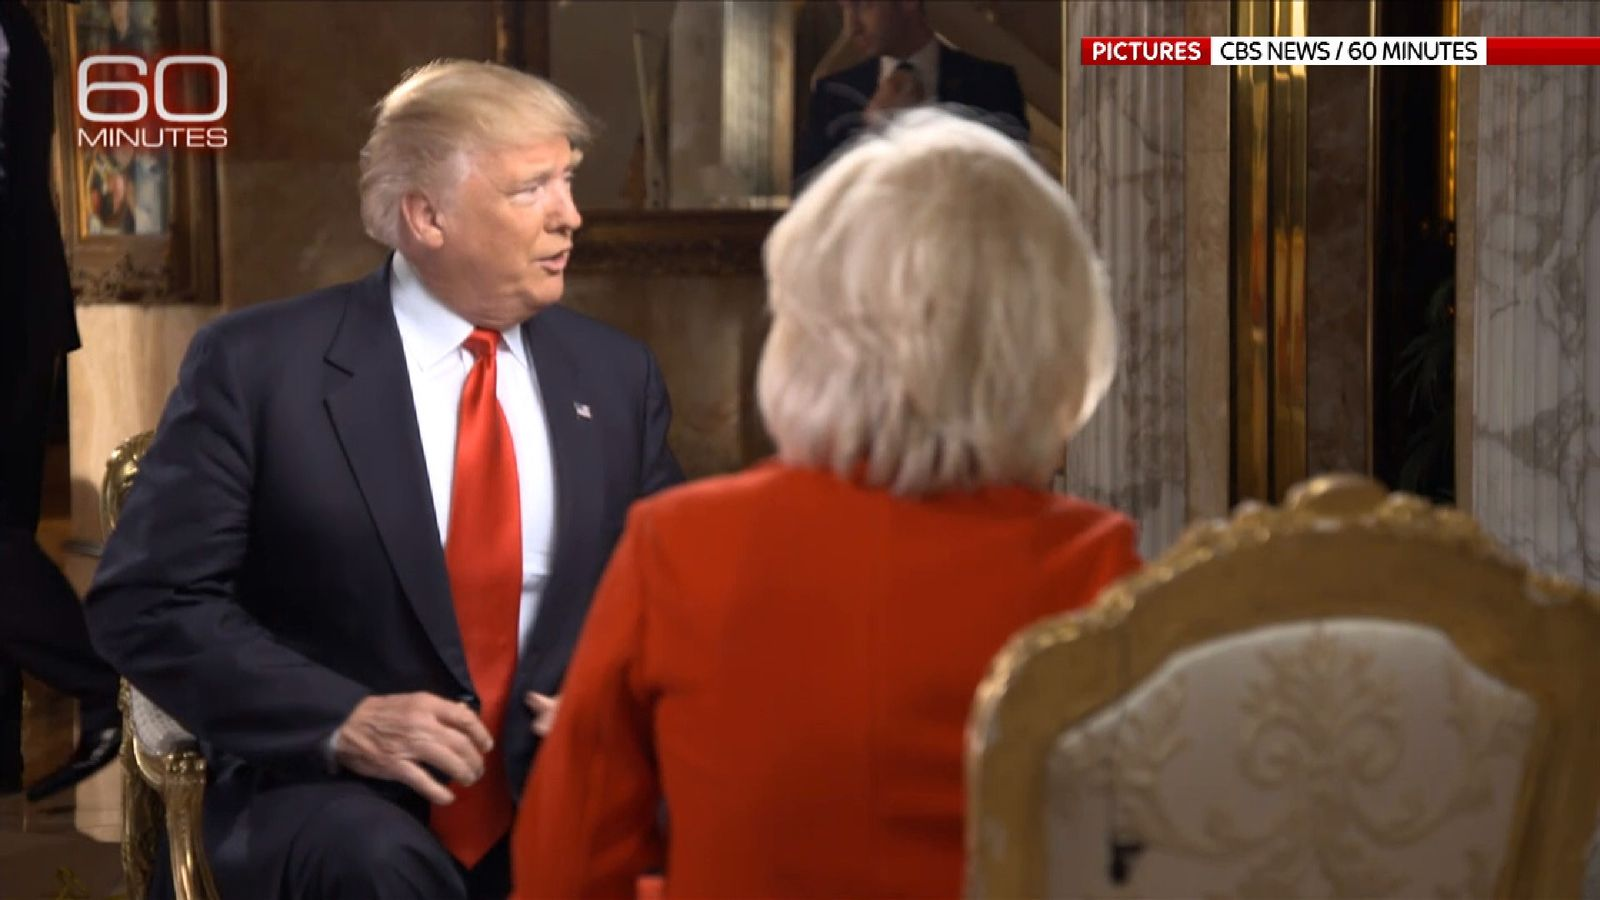 Donald Trump shows a softer side in his first TV interview since becoming President-elect